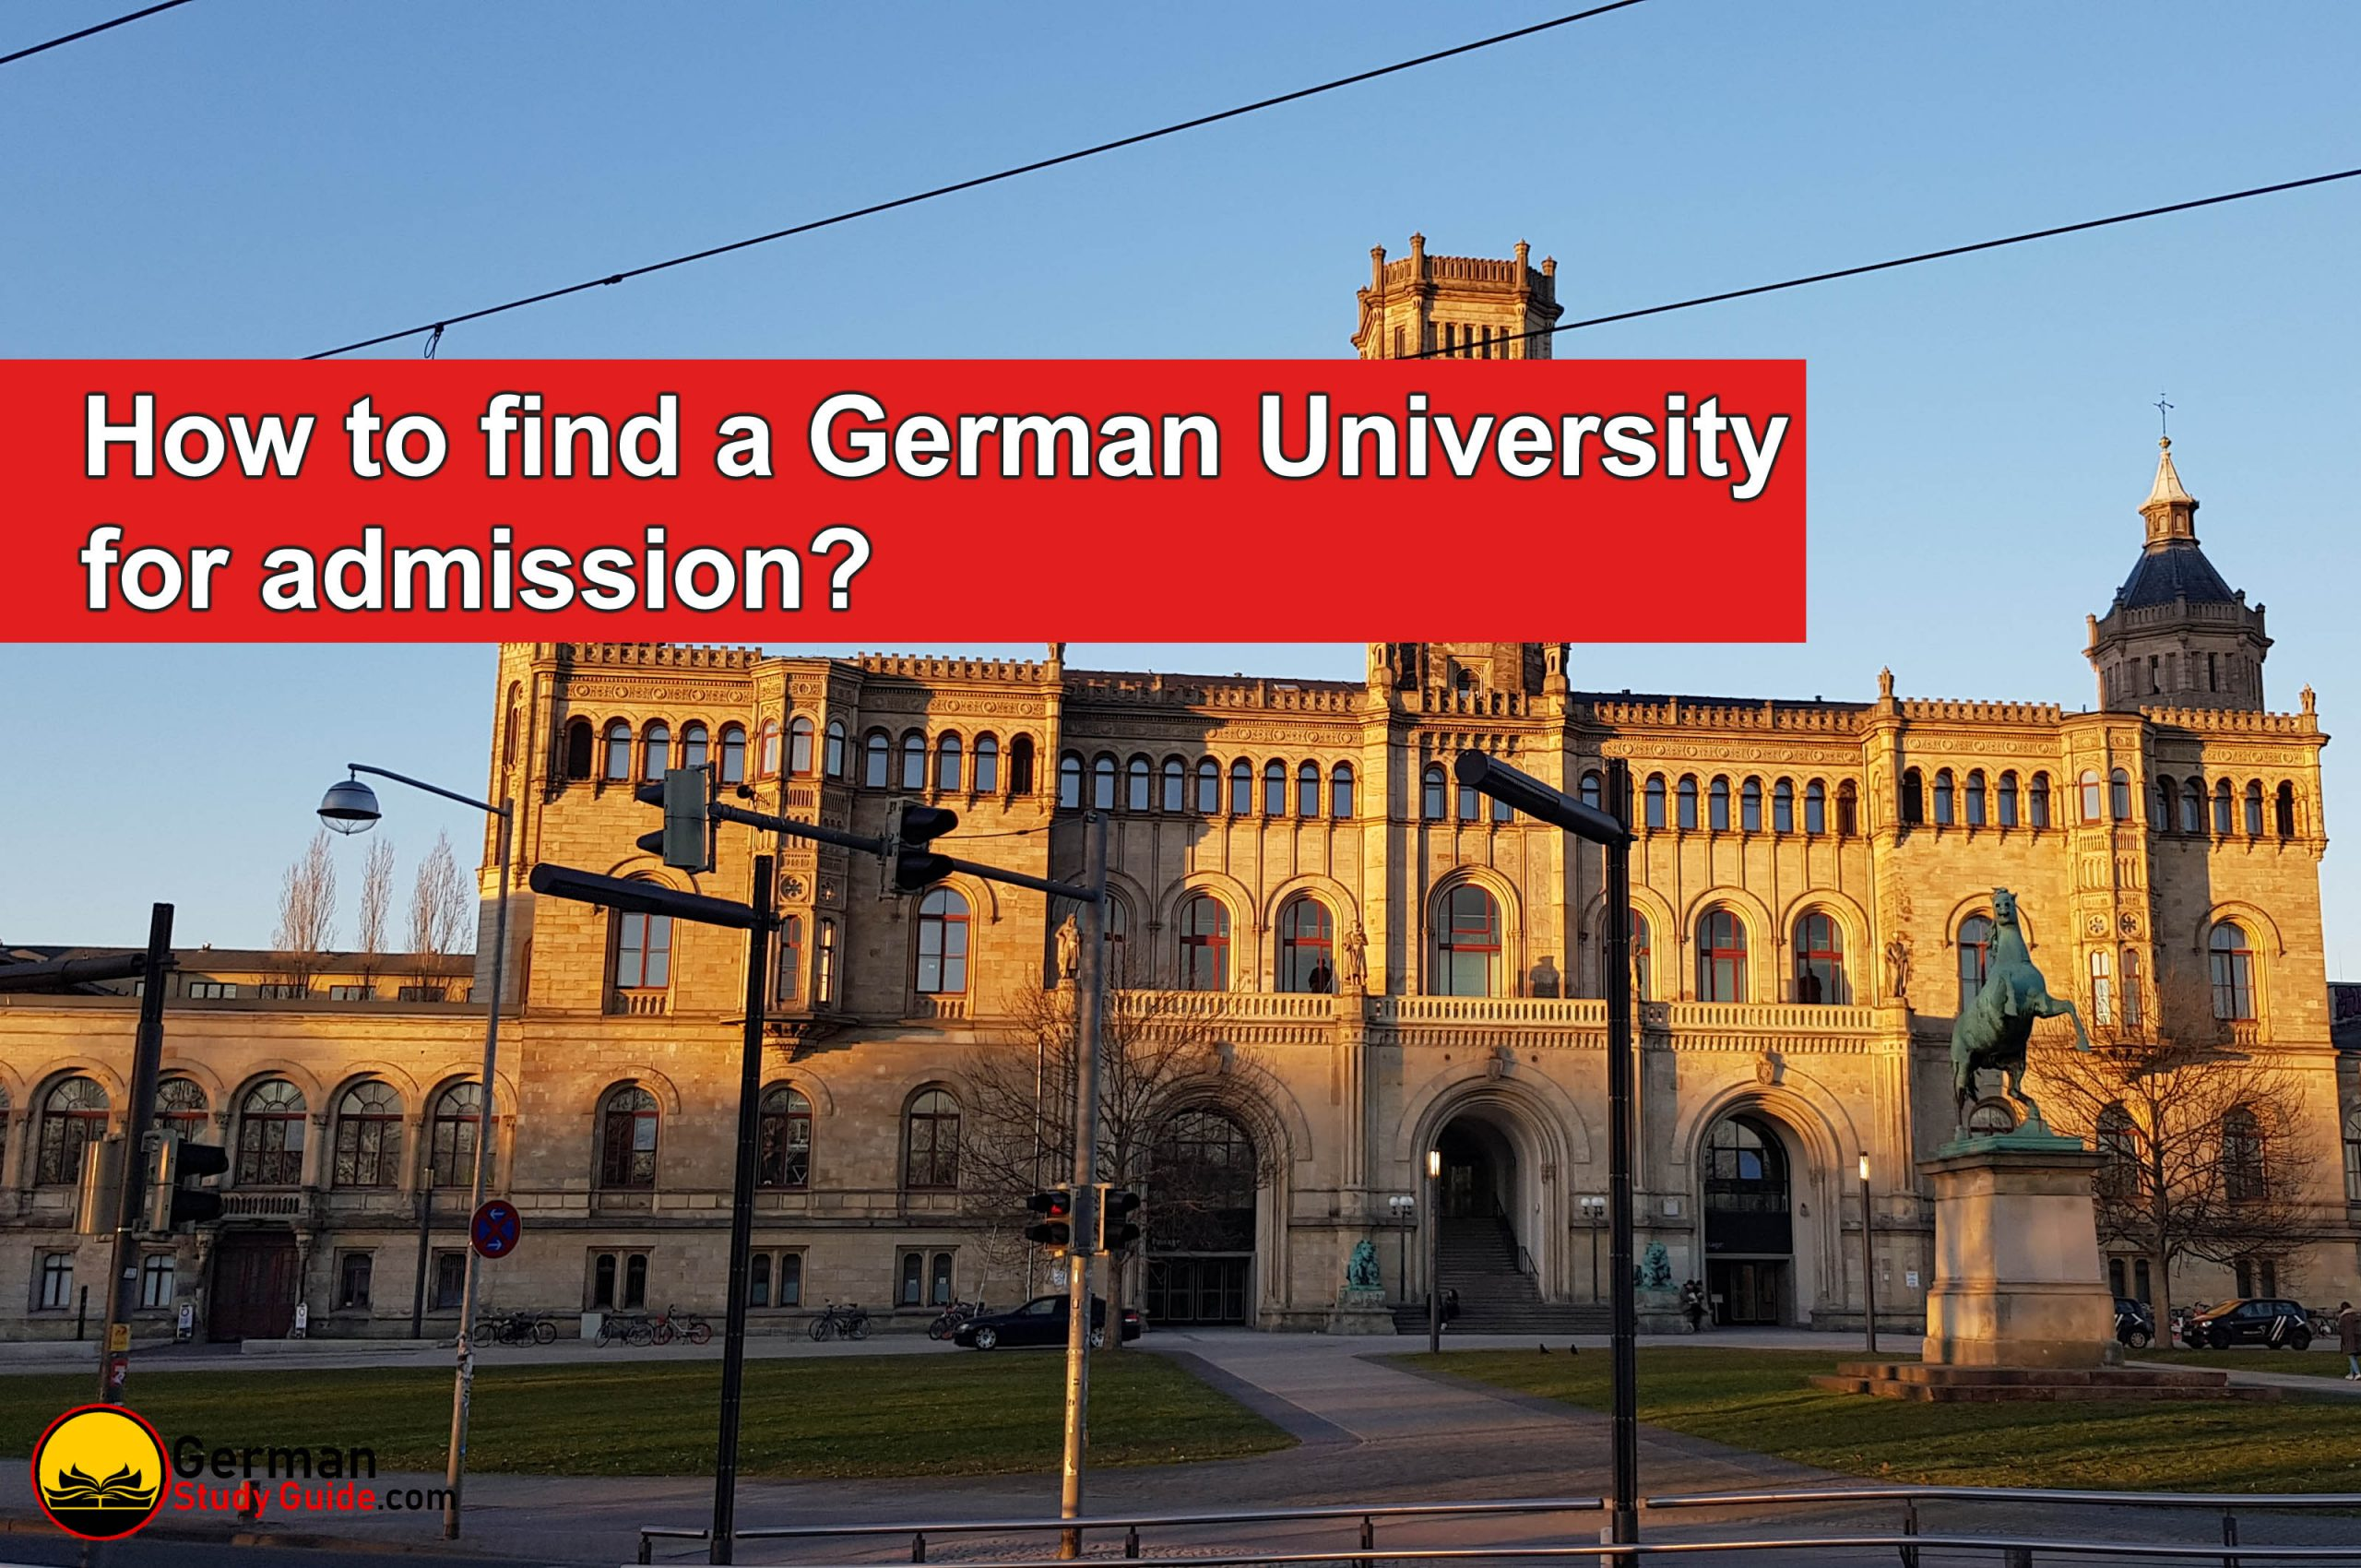 How to Find German University for Admission?